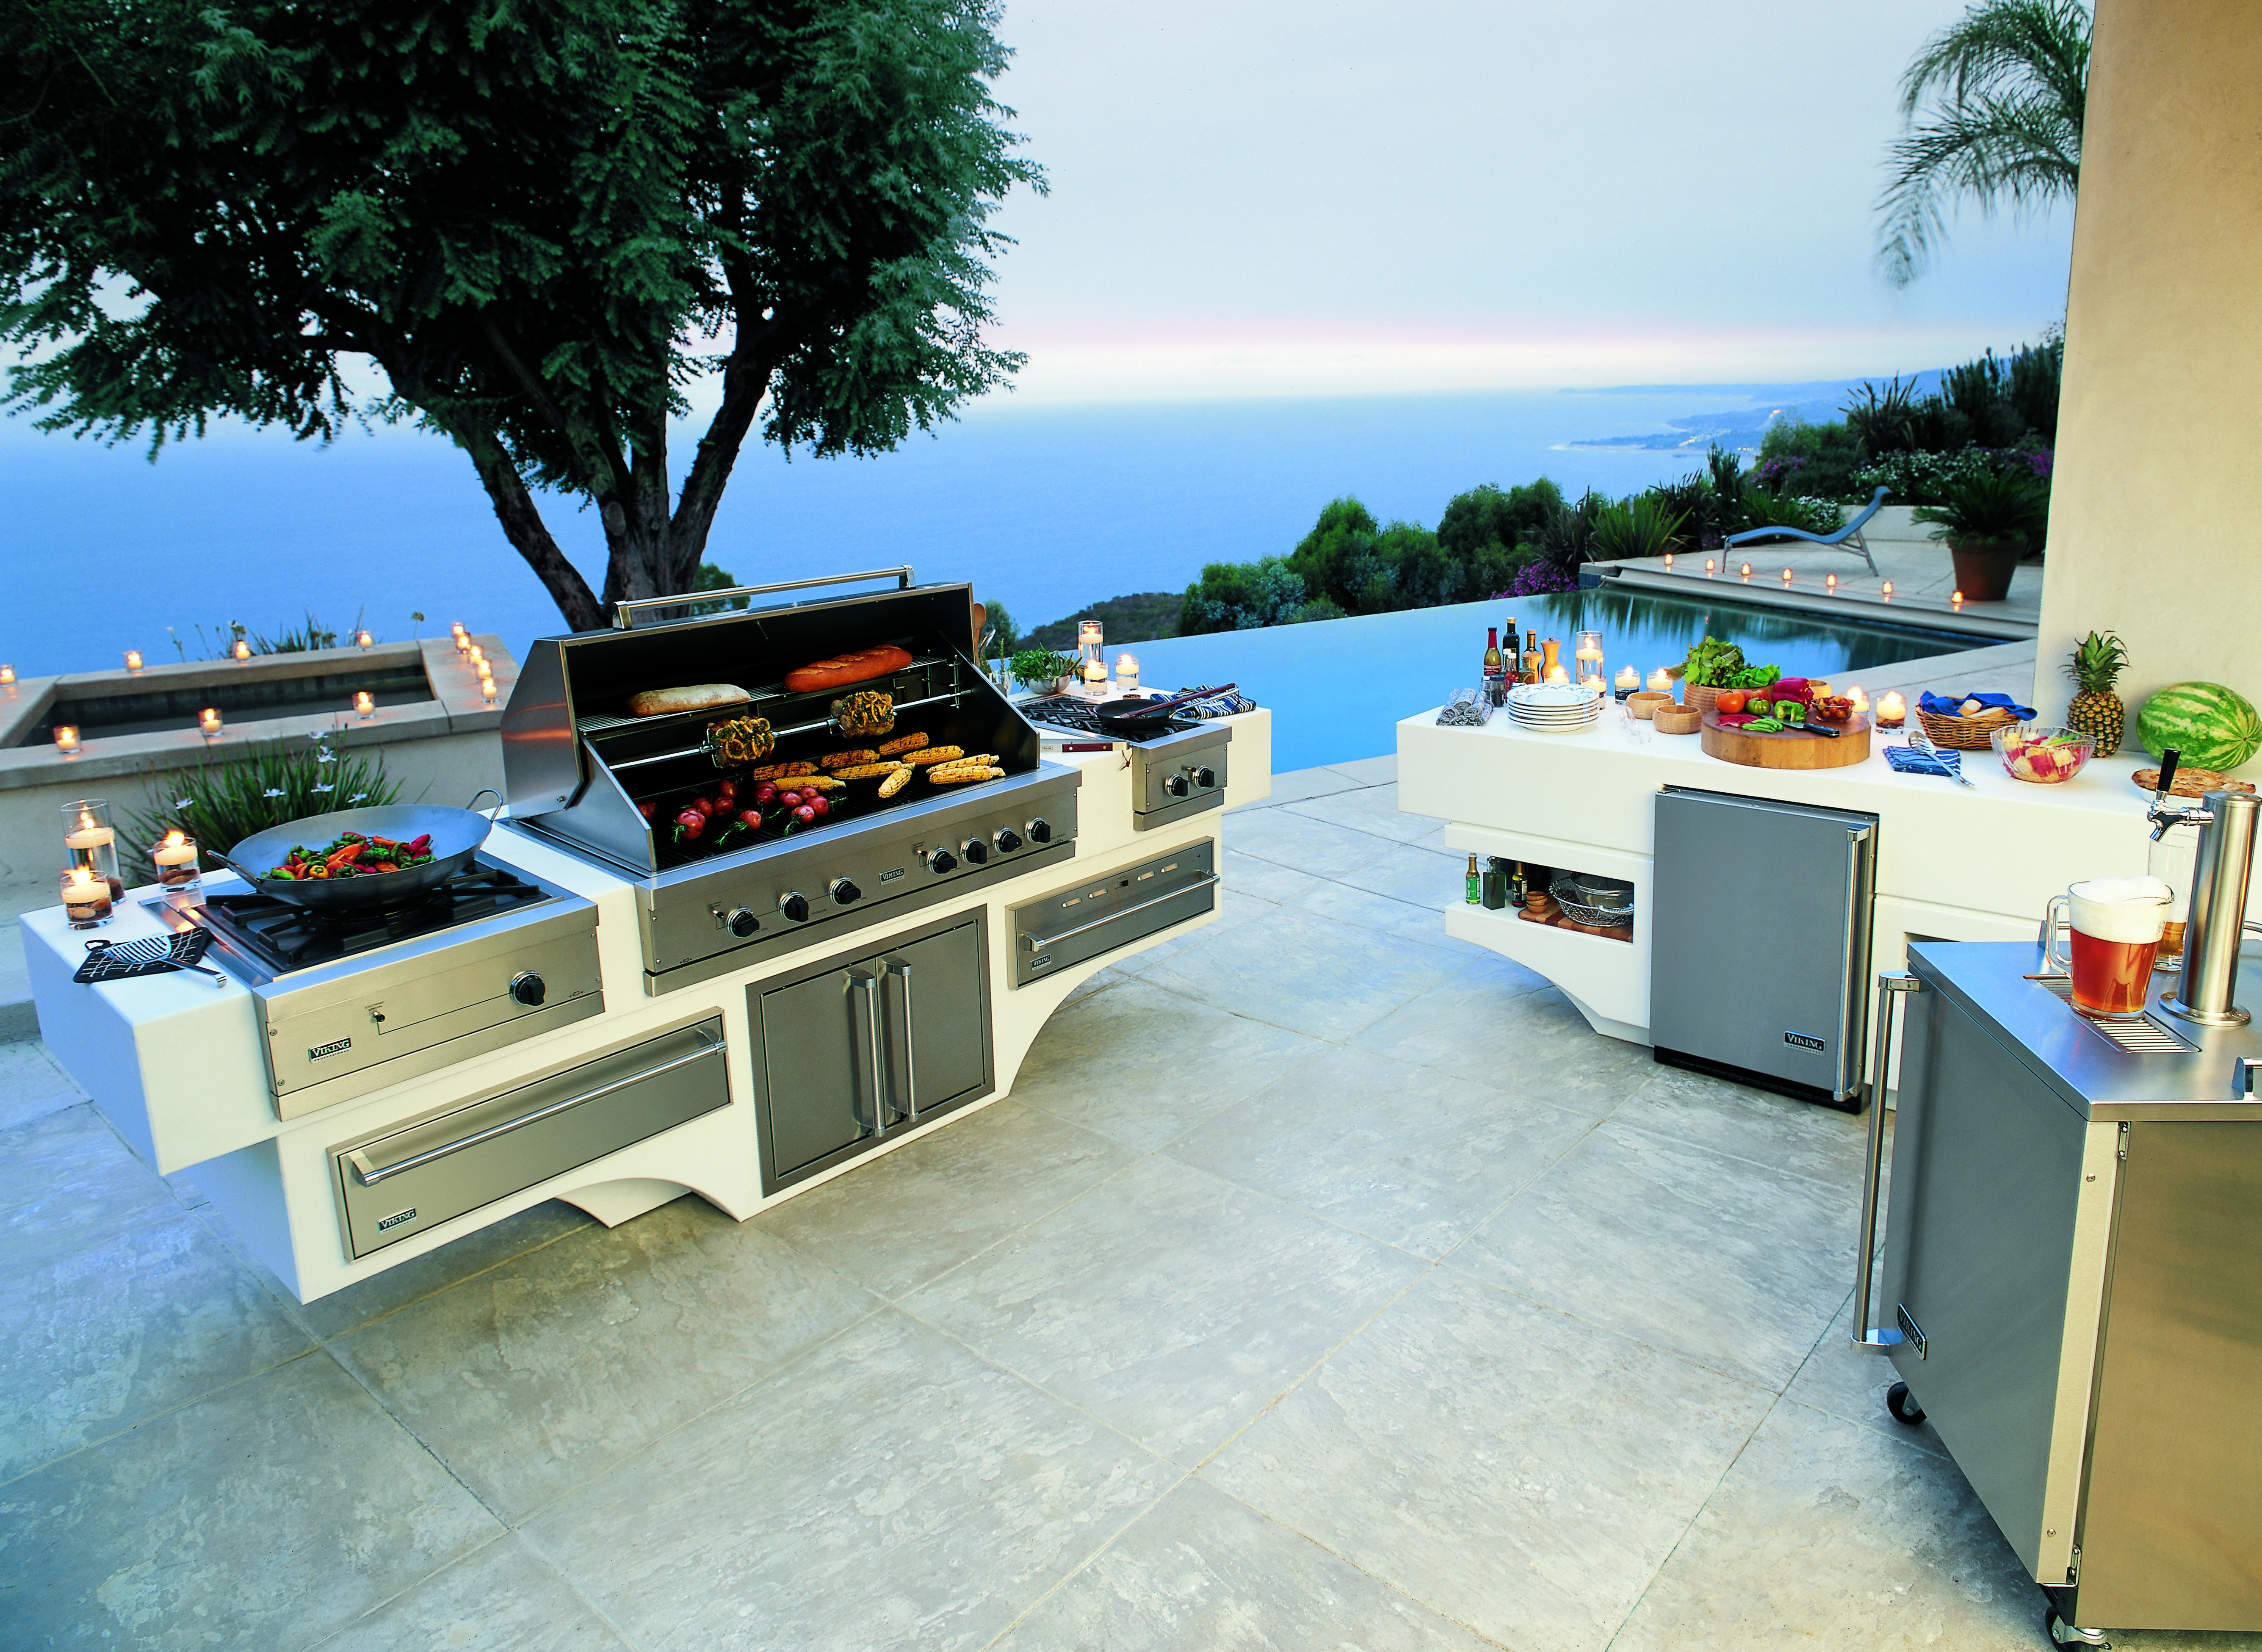 viking outdoor barbecue grills - nevada outdoor living